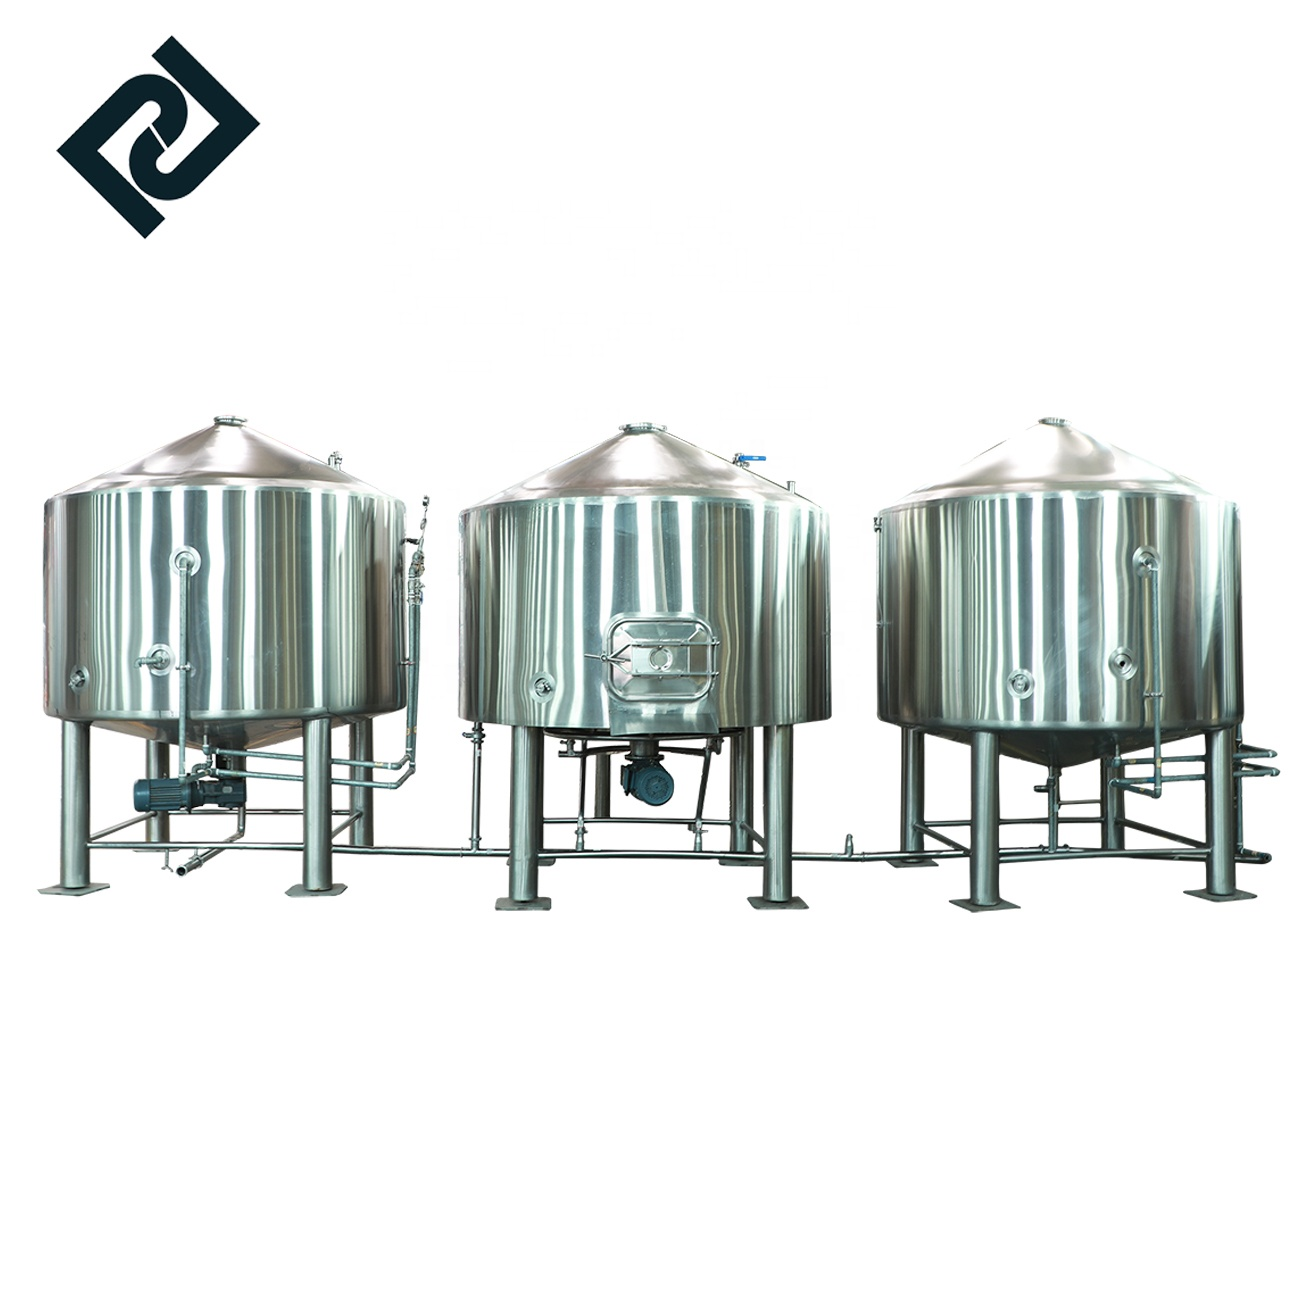 Good Wholesale Vendors 5 Bbl Microbrewery Equipment For Sale Beer - 1000L craft beer pasteurization equipment high quality 1000L beer brewing equipment micro brewery plant – Pijiang